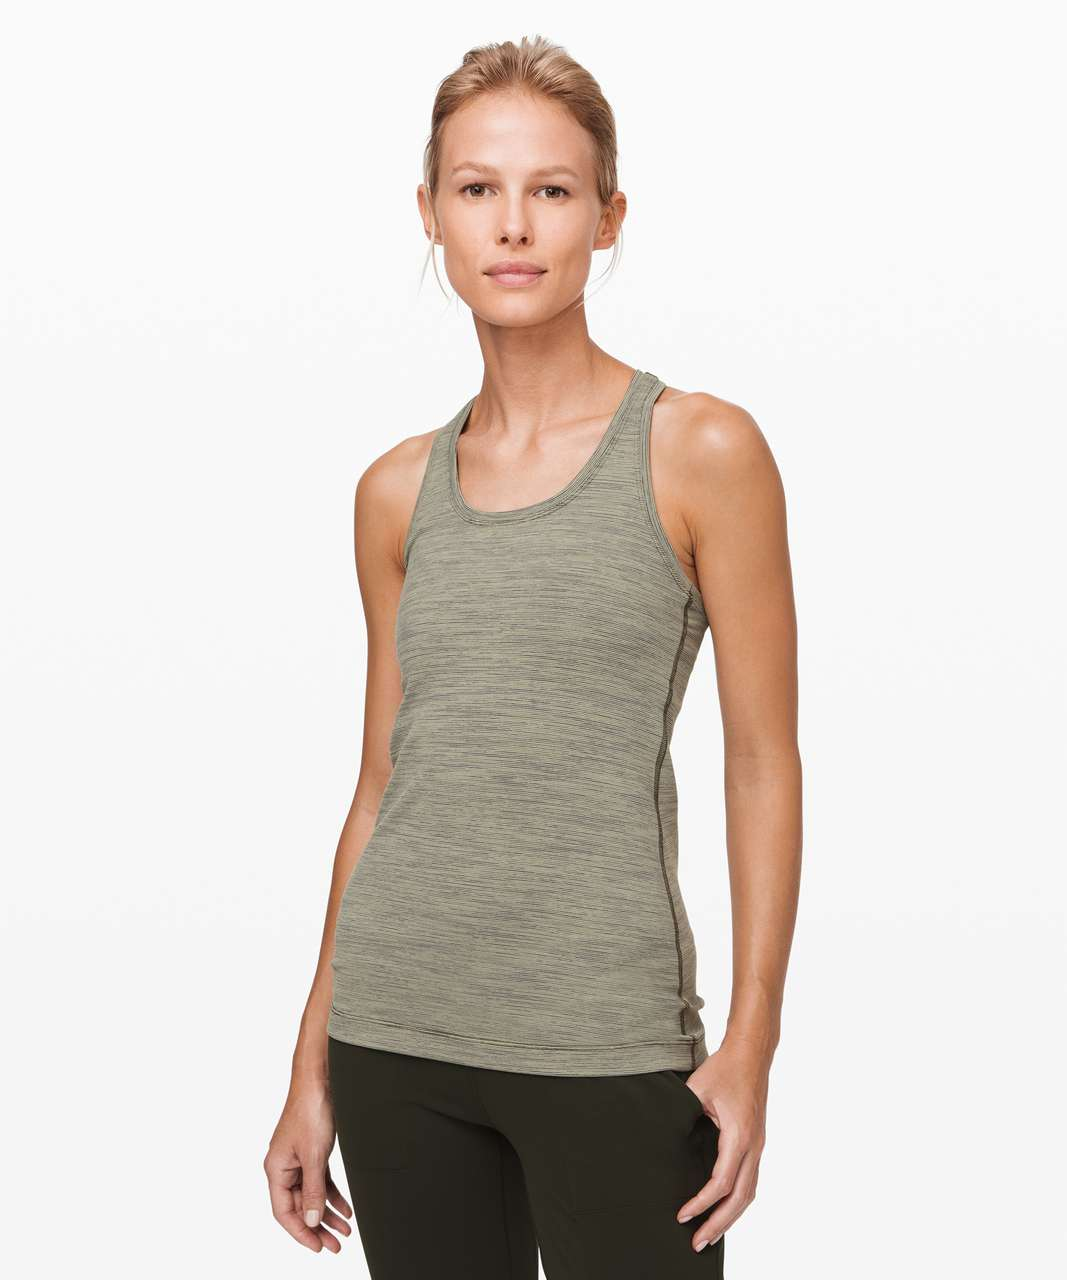 Lululemon Cool Racerback II - Wee Are From Space Sage Dark Olive